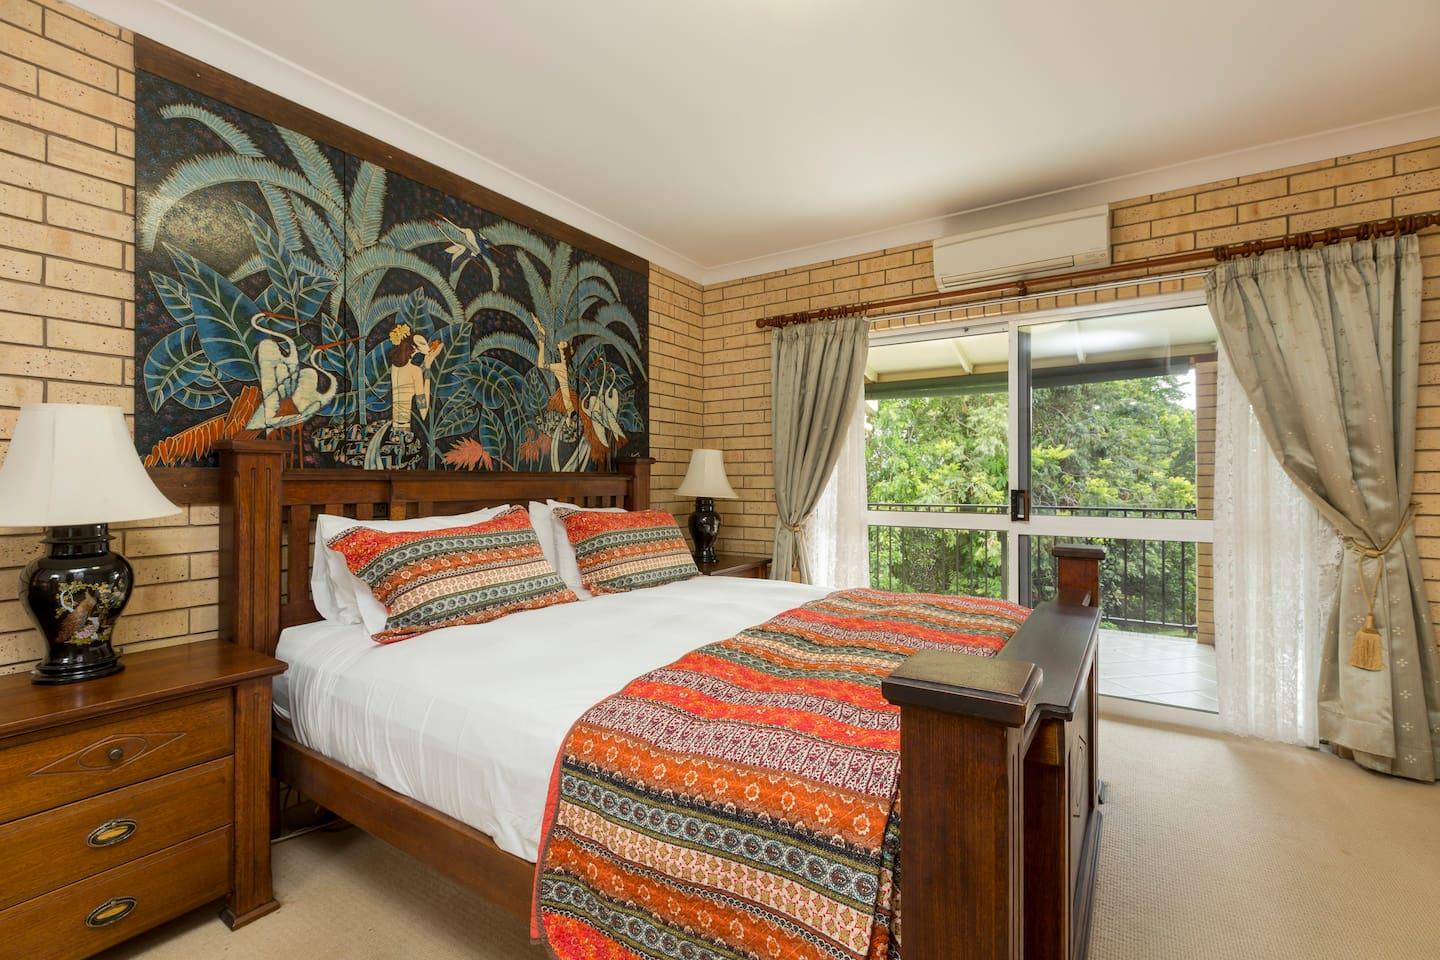 Main bedroom (main house) with a comfy king bed with a hidden surprise!   Sliding glass doors open to the veranda with a rainforest outlook.